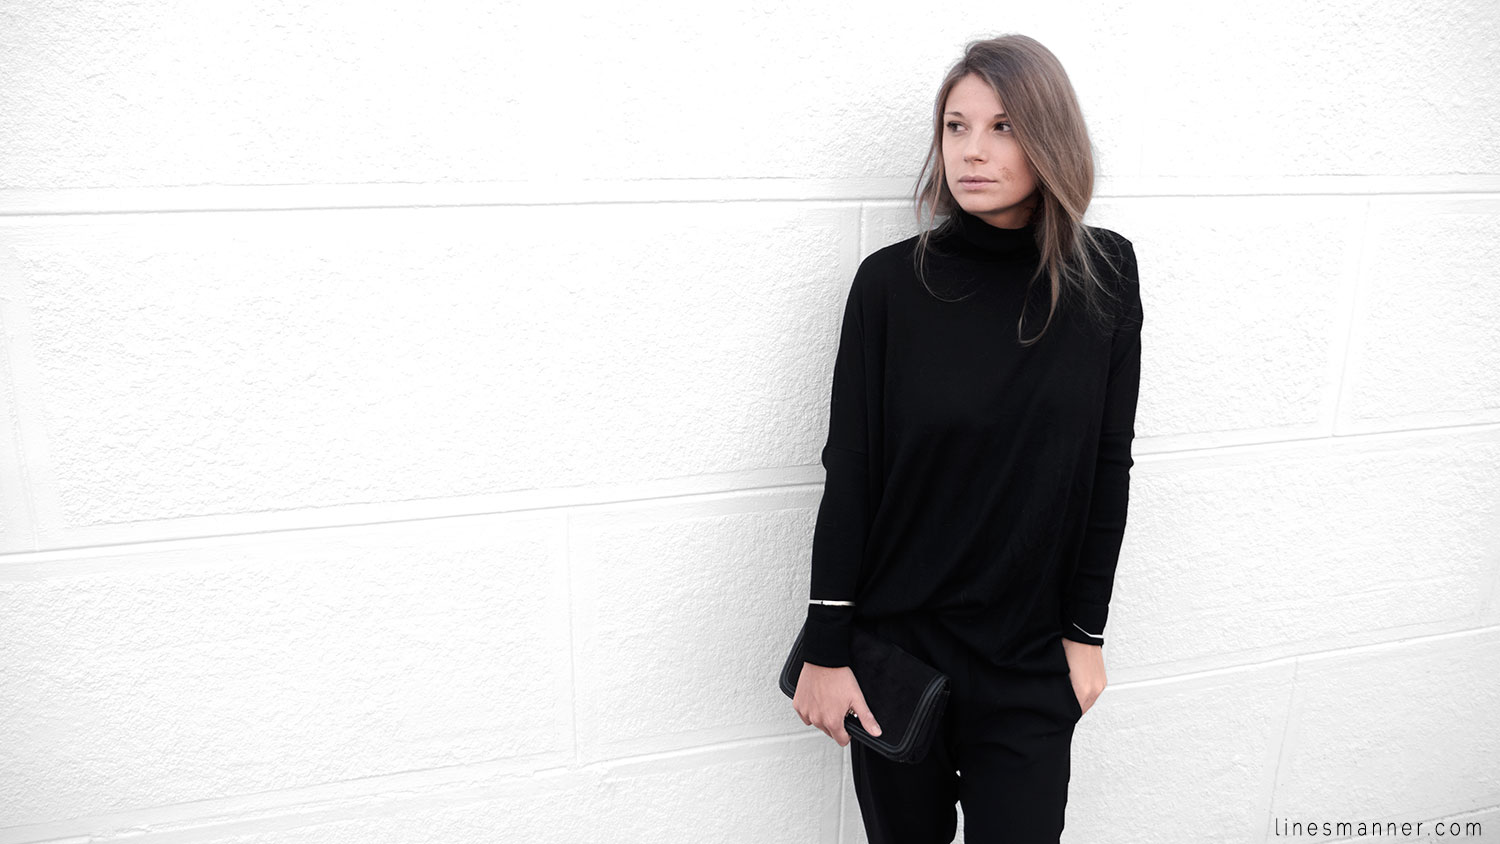 Lines-Manner-Minimalism-Details-Black-All_black_everything-Simplicity-Timeless-Modern-Monochrome-Essential-Basics-Staples_pieces-Outfit-Design-Effortless-2